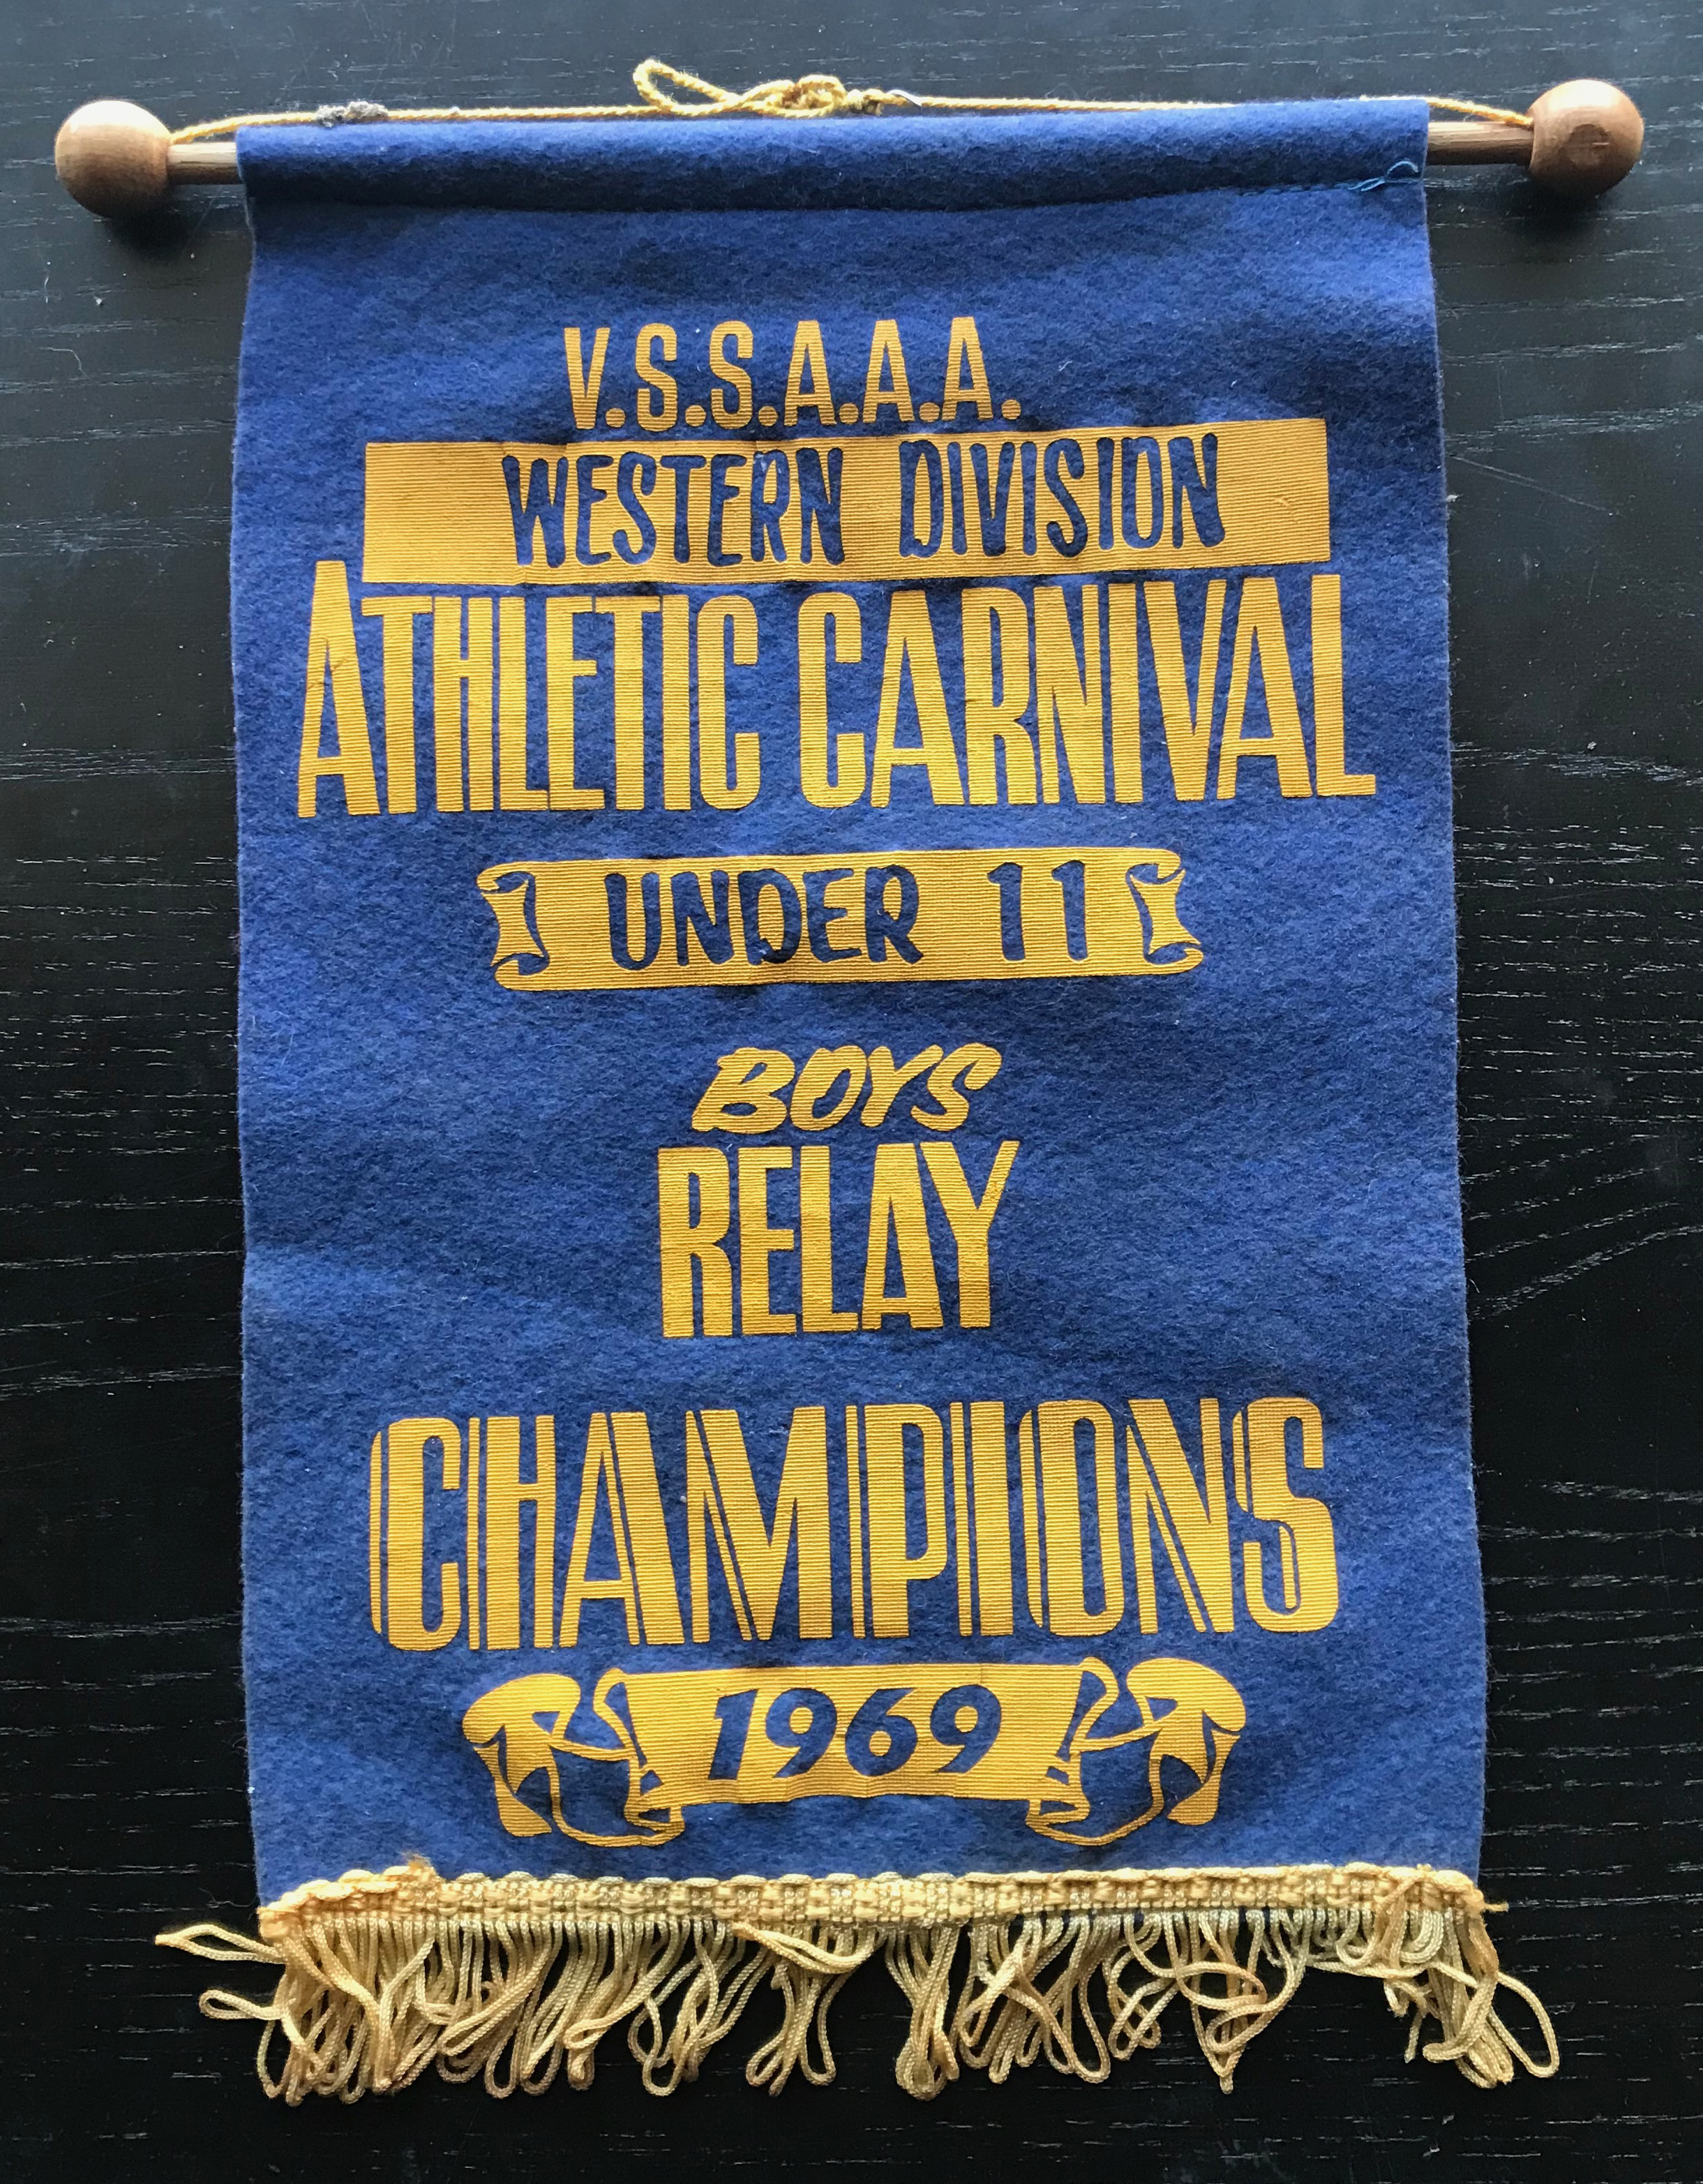 1969 sports penant for the boys relay